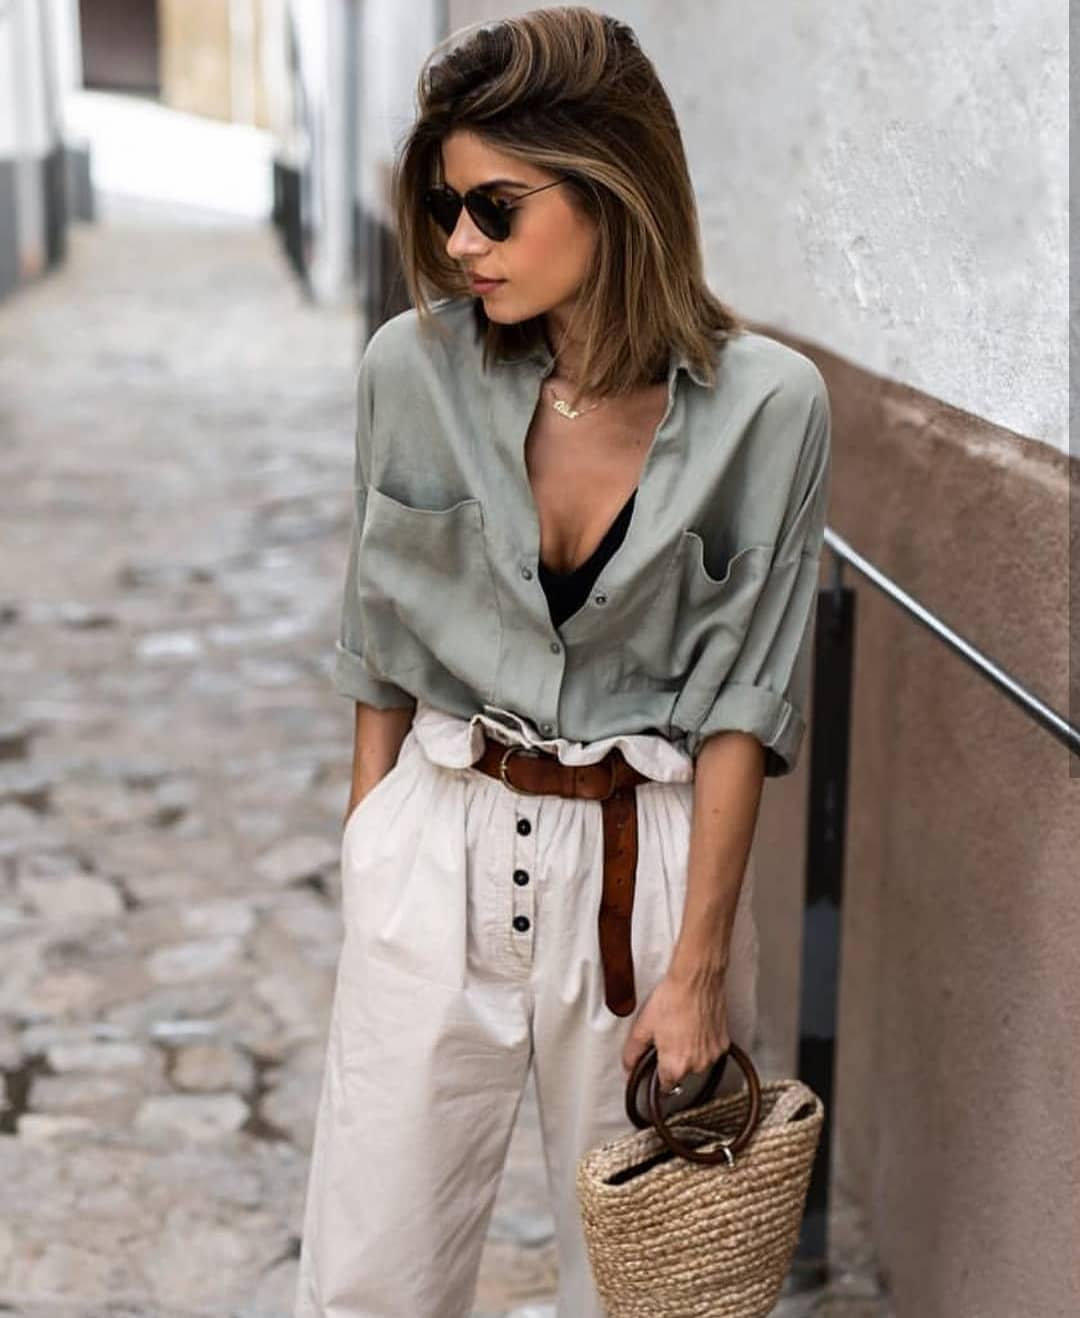 Khaki Silk Shirt And Gathered White Pants: Safari City Look For Summer 2020